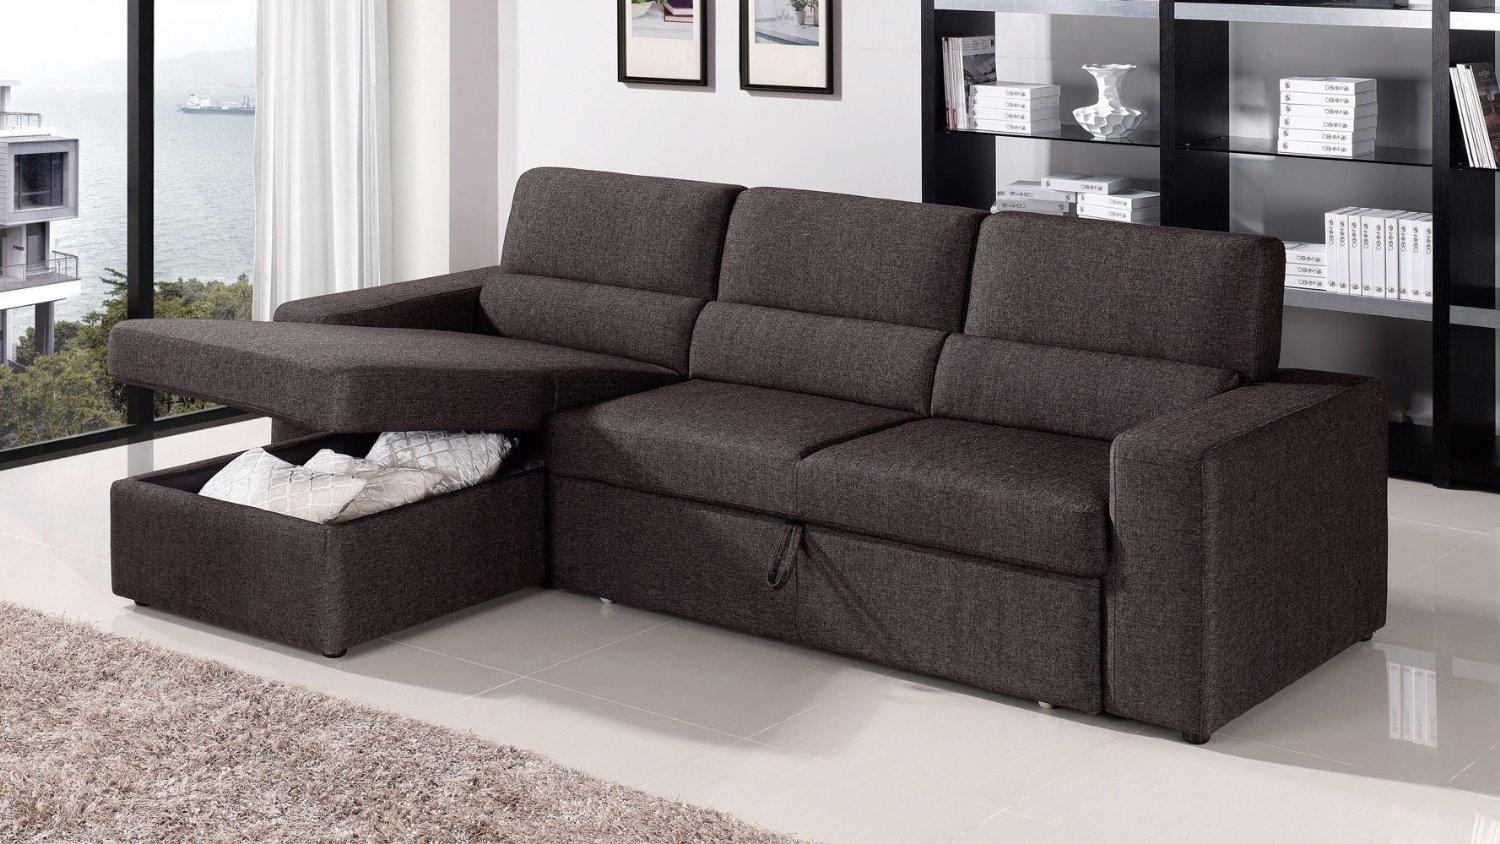 leather sectional sofa with recliner and sleeper round outdoor furniture 20 43 choices of ideas